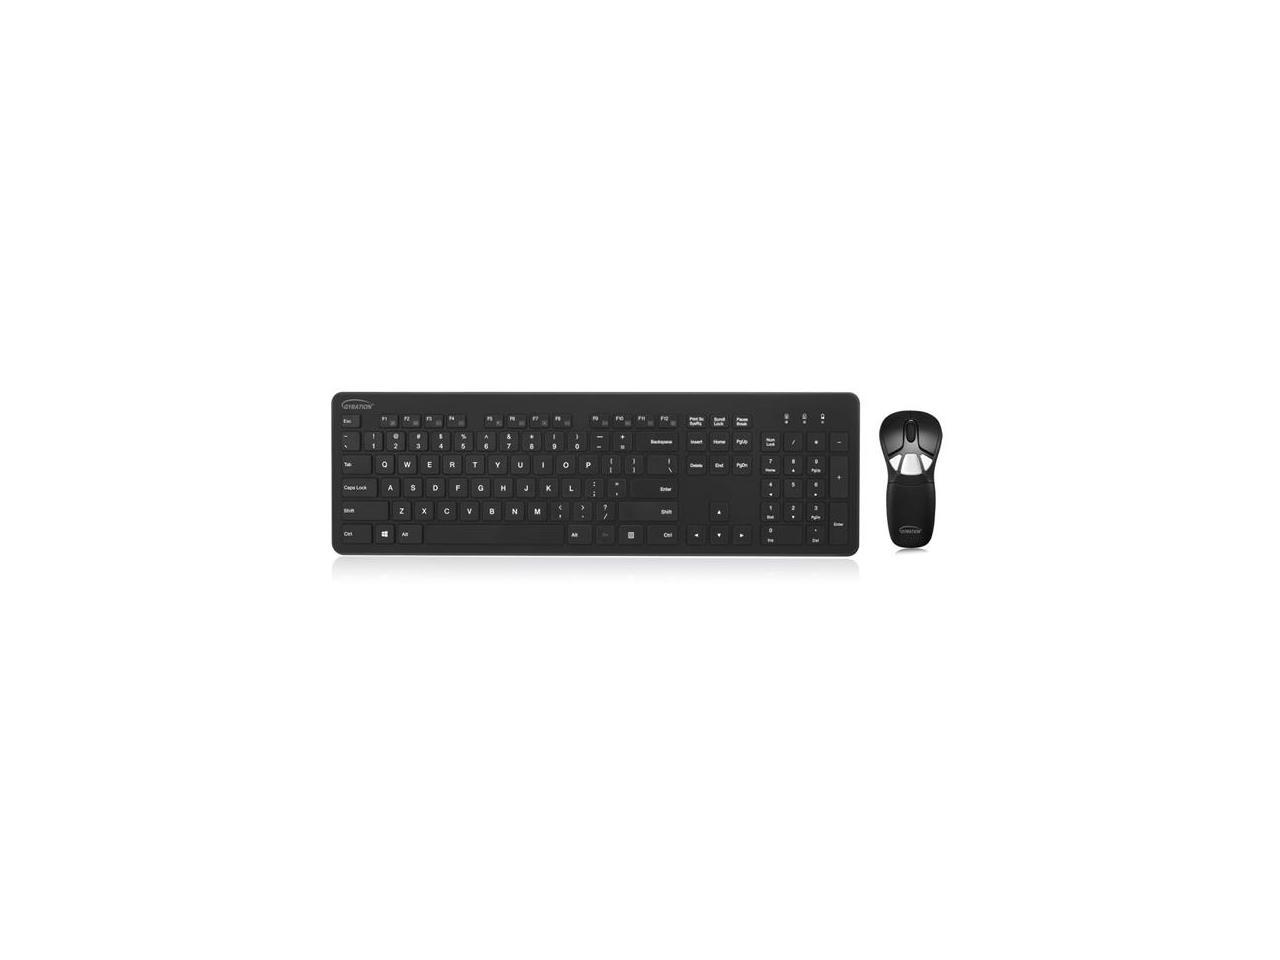 USB USB GYM1100FKNA 104 Keys Wireless Wireless Optical Mouse Gyration Air Mouse GO Plus with Full Size Keyboard Keyboard